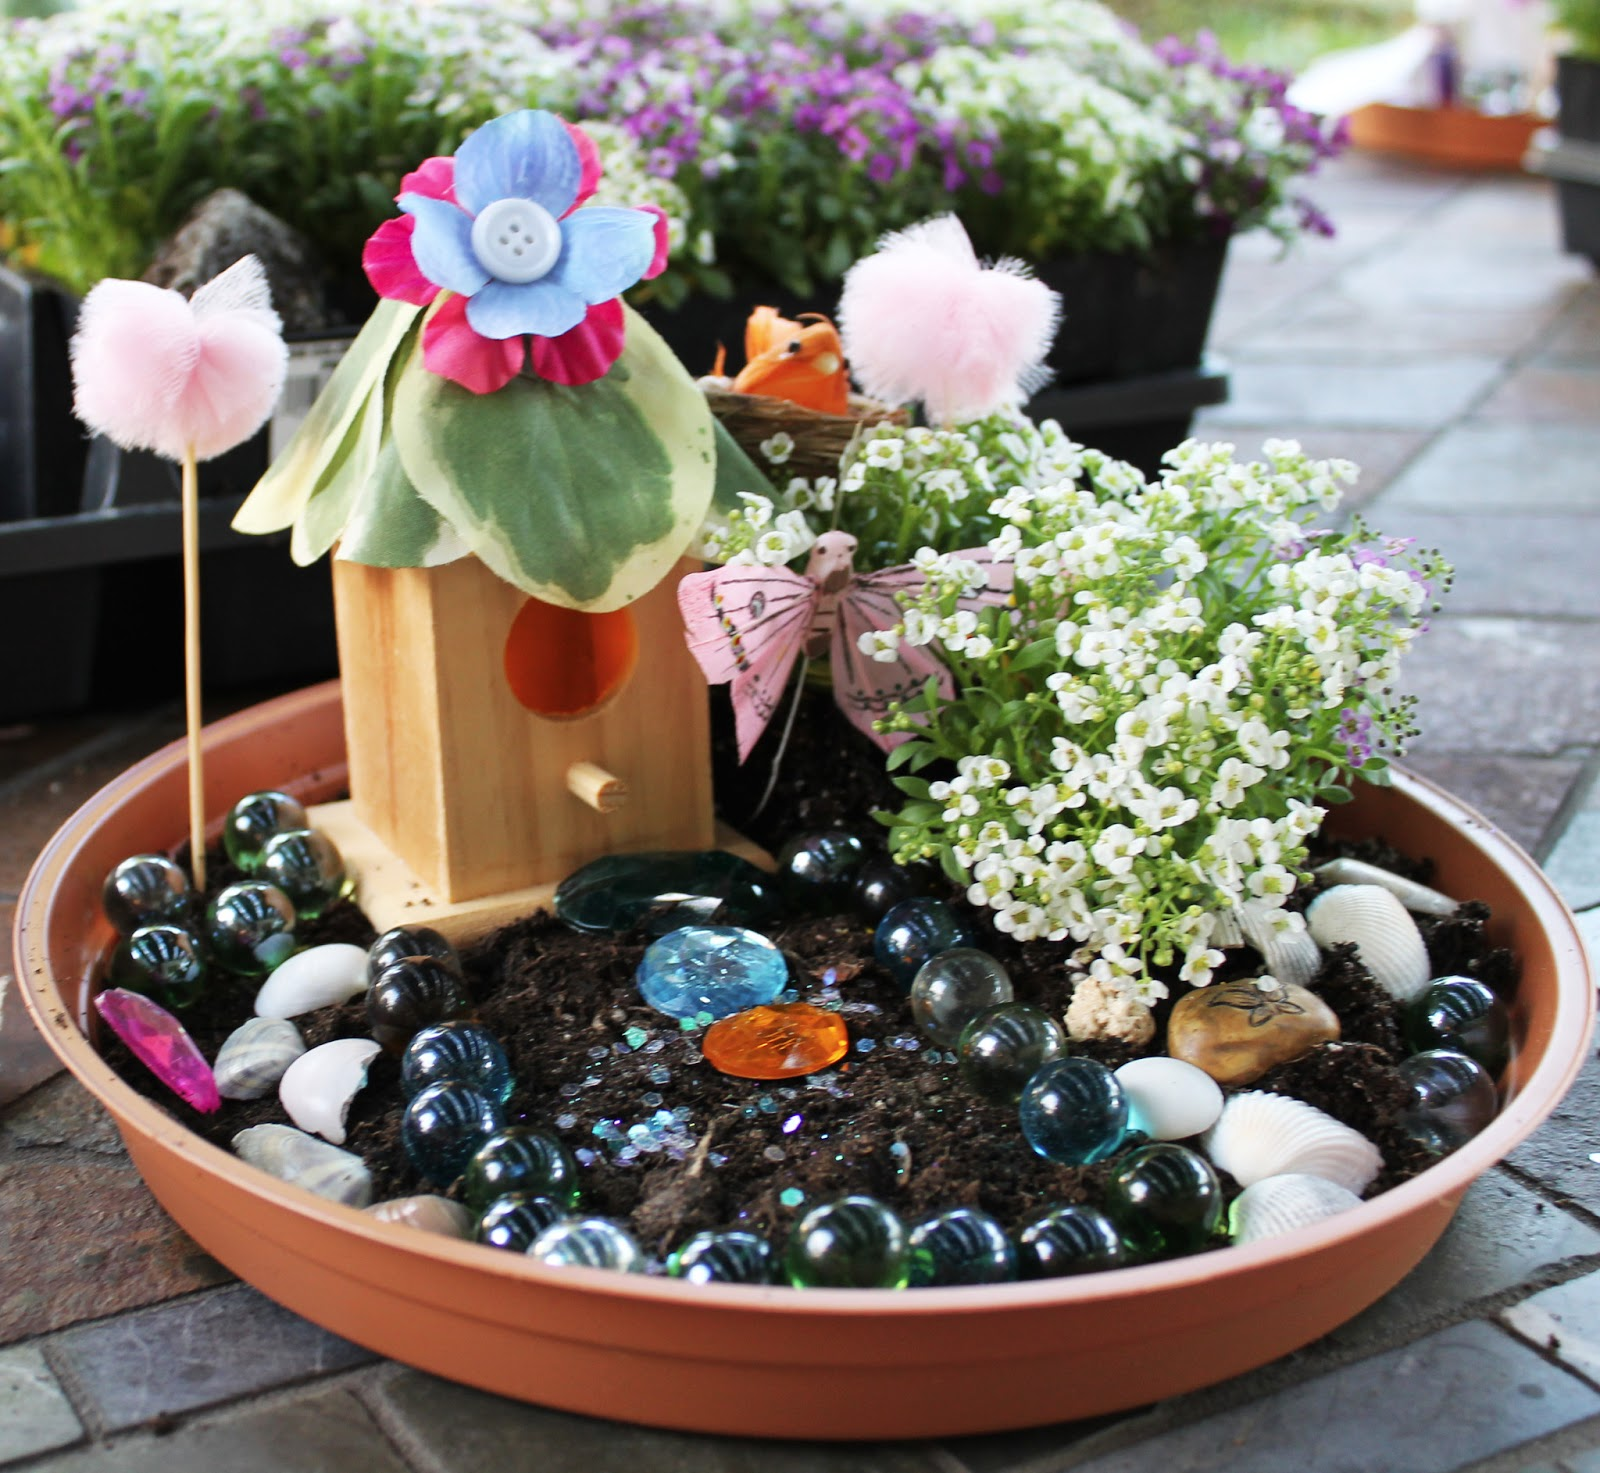 Magical Fairy Garden Designs: Creatively Quirky At Home: Emelia's Magical Fairy Garden